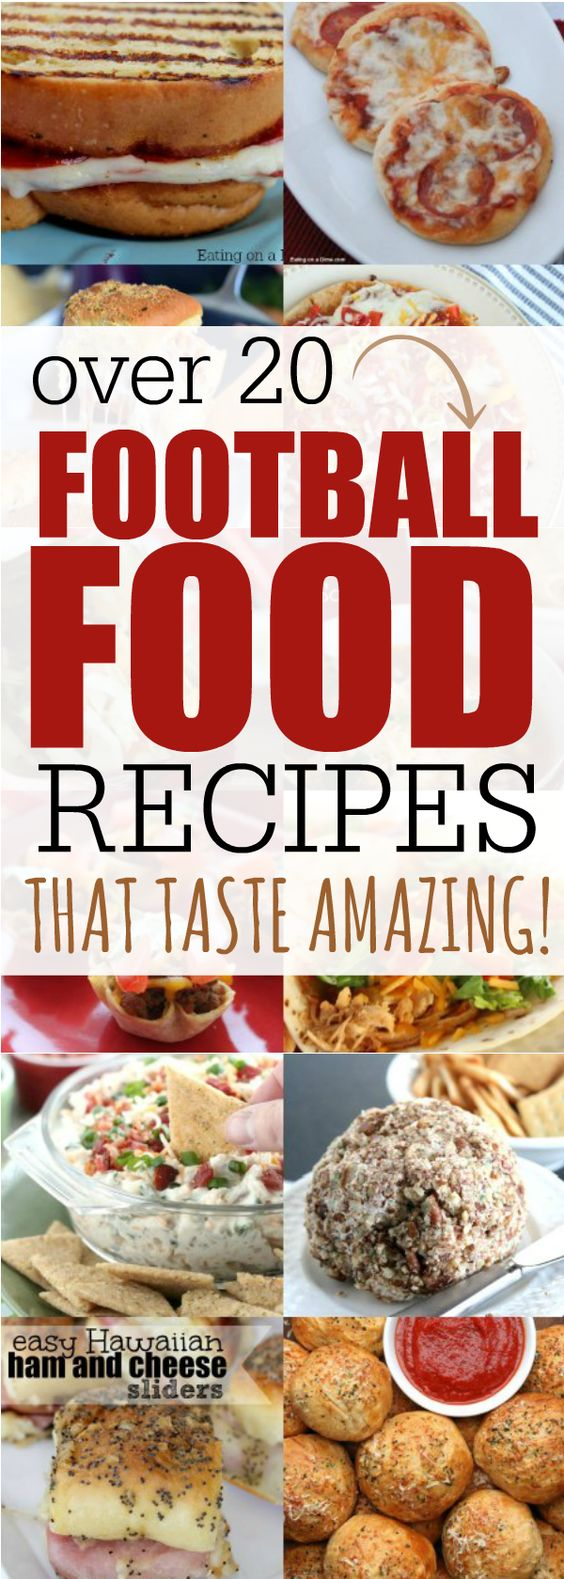 Try these delicious Football Food Recipes;. Everyone will love these easy Game Day appetizers and Game Day Meals.